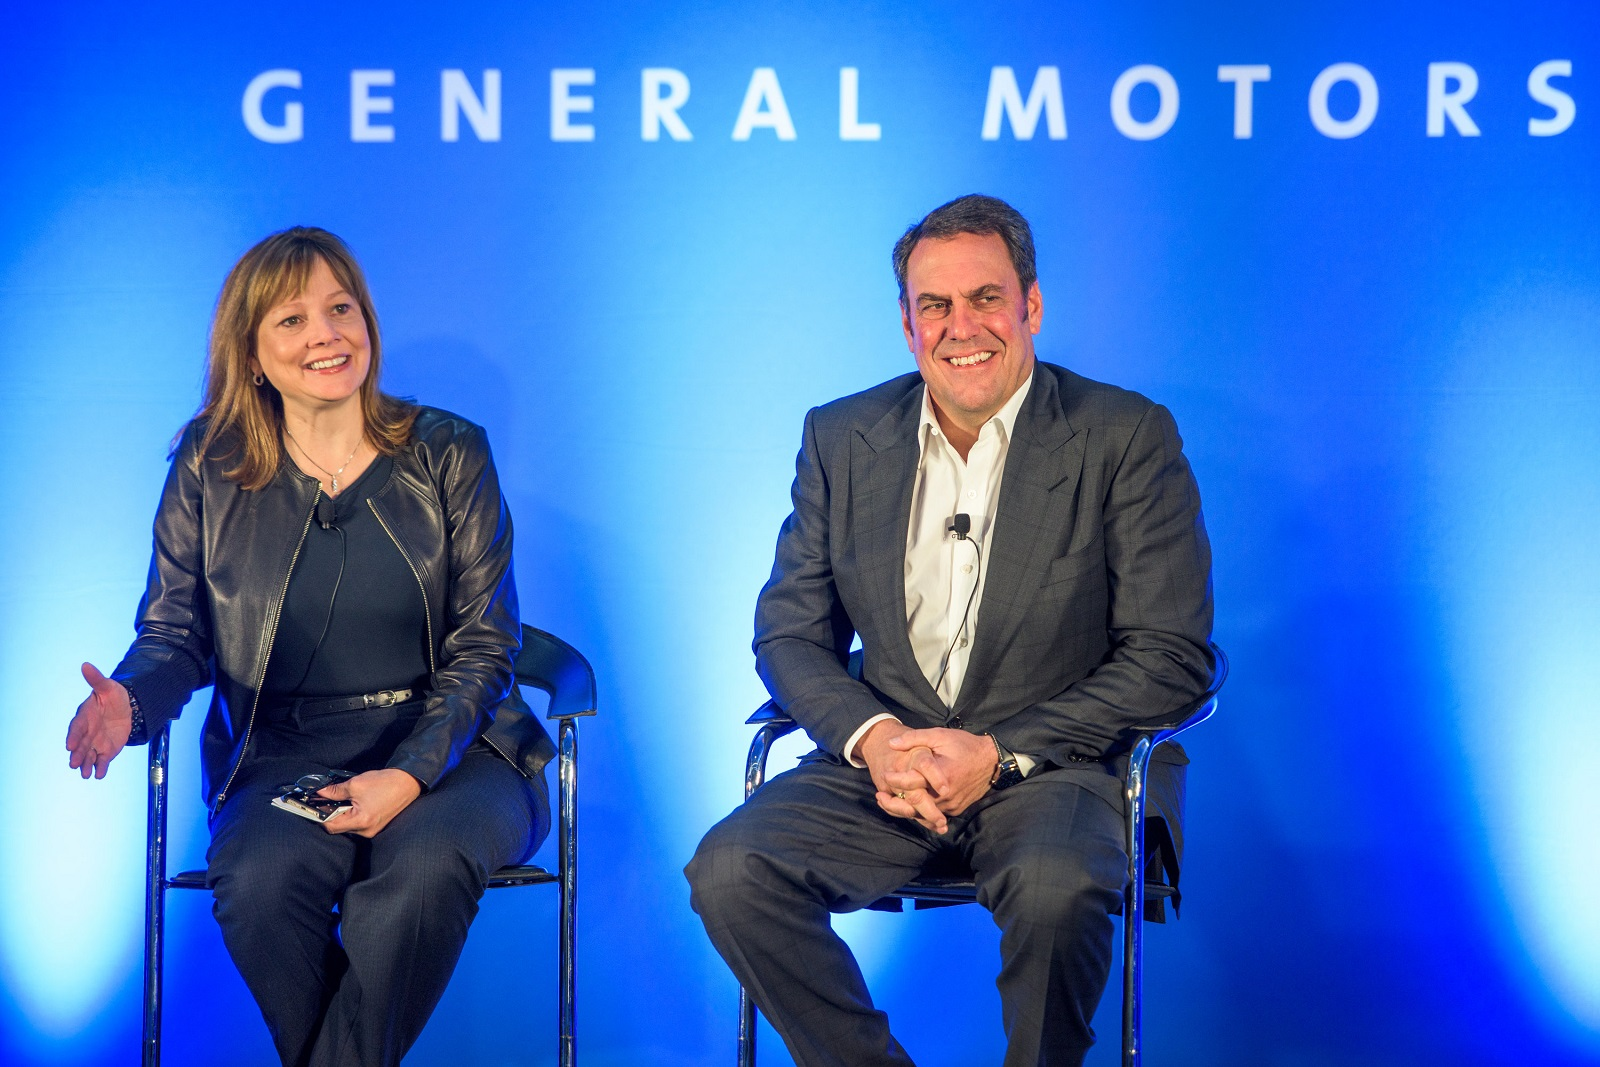 Gm Outlines Areas Of Focus For The Future